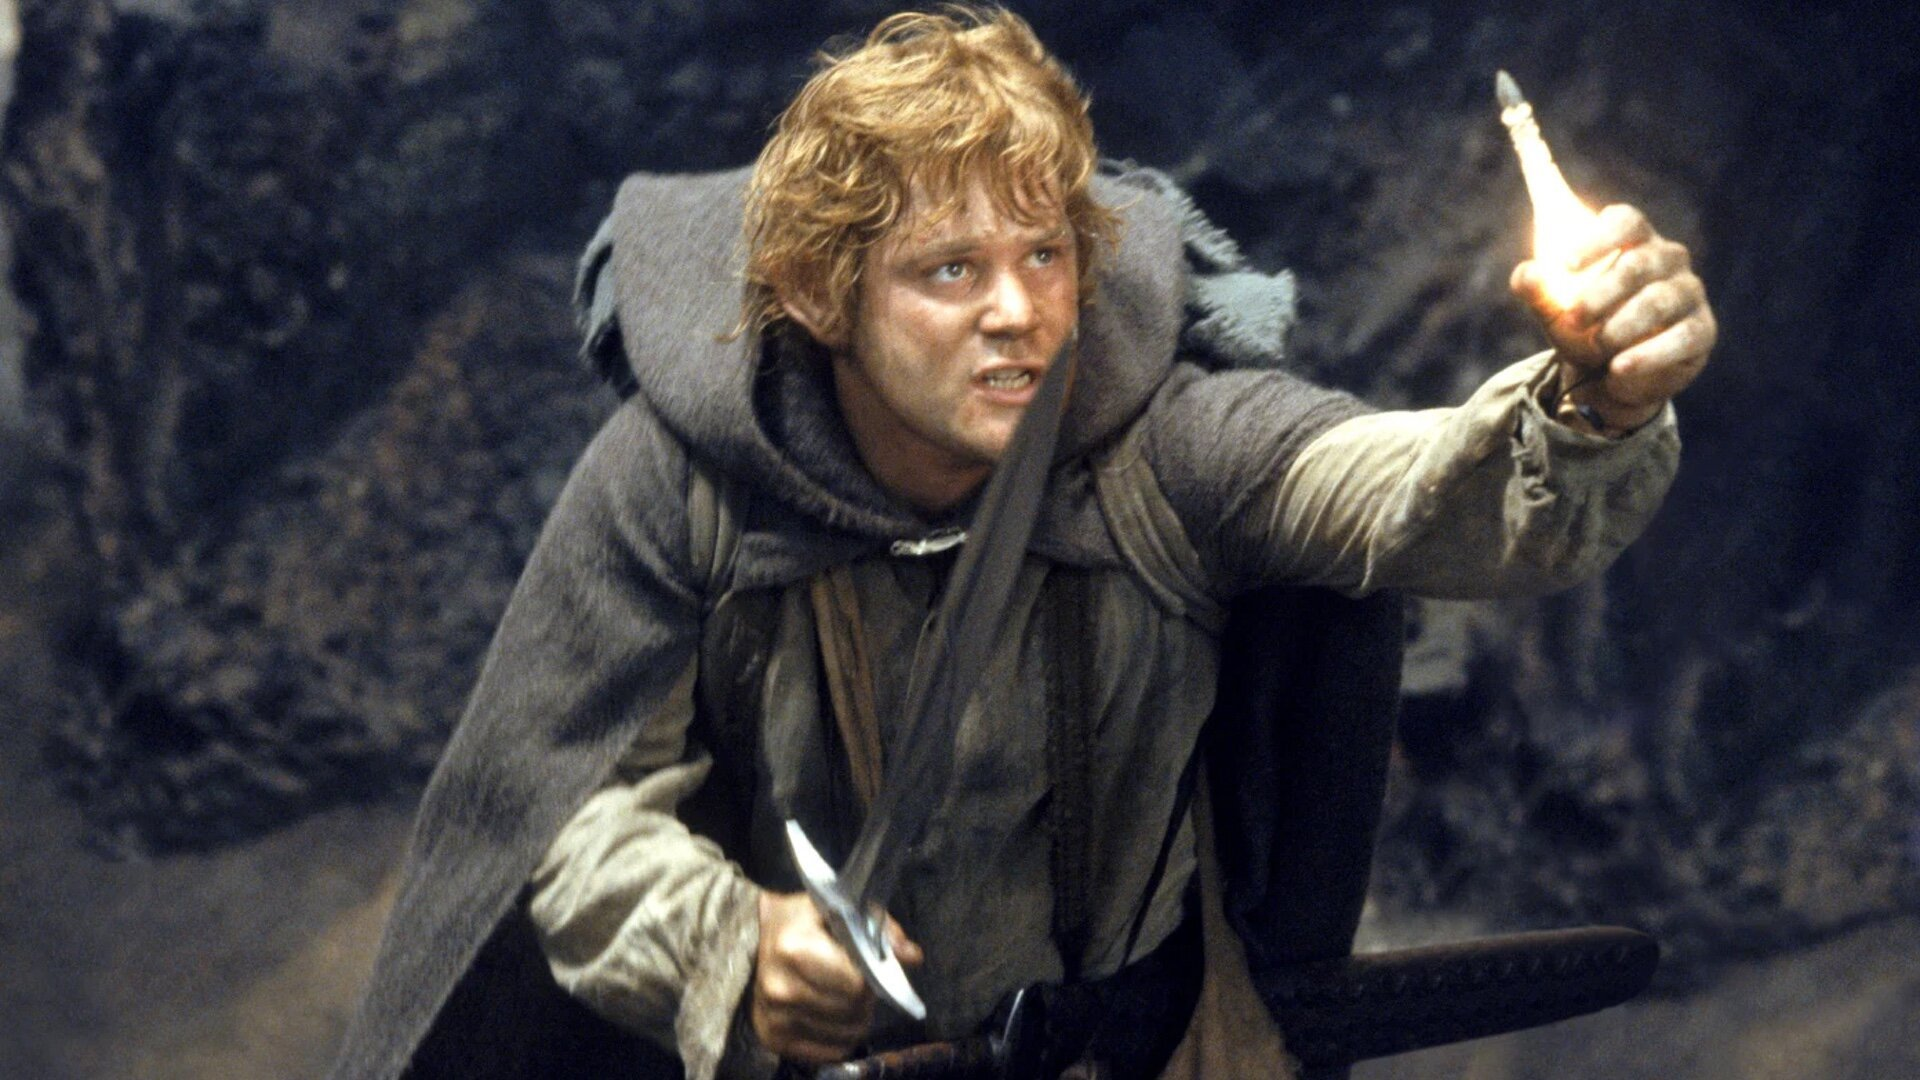 sean astin talks about the grueling scene in the lord of the rings that took him a long time to fully immerse himself in social 10 Things You Never Knew About Sean Astin